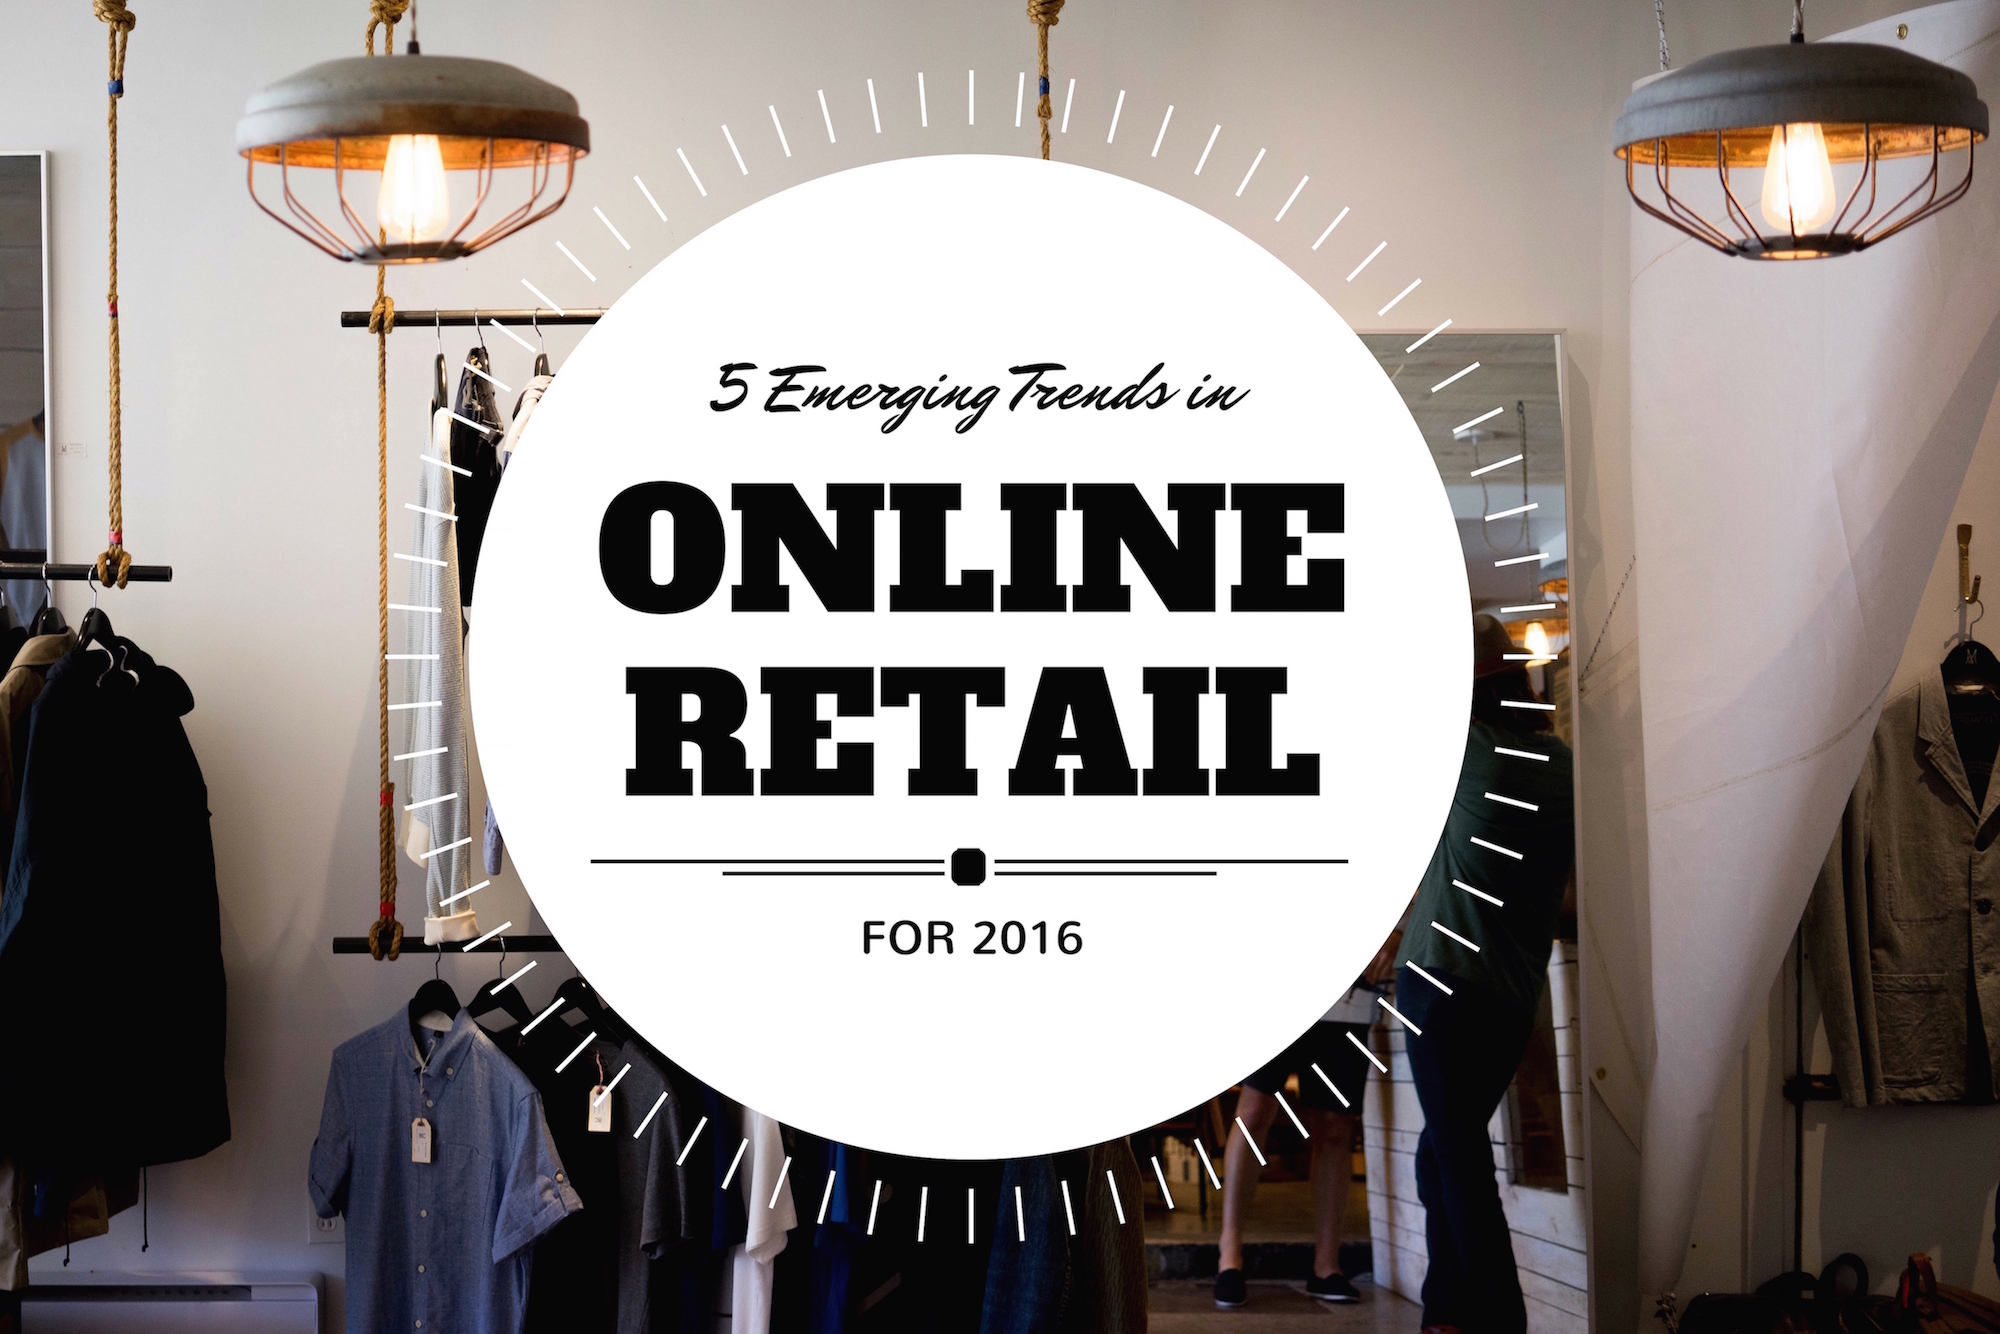 5 Emerging Trends in Online Retail for 2016